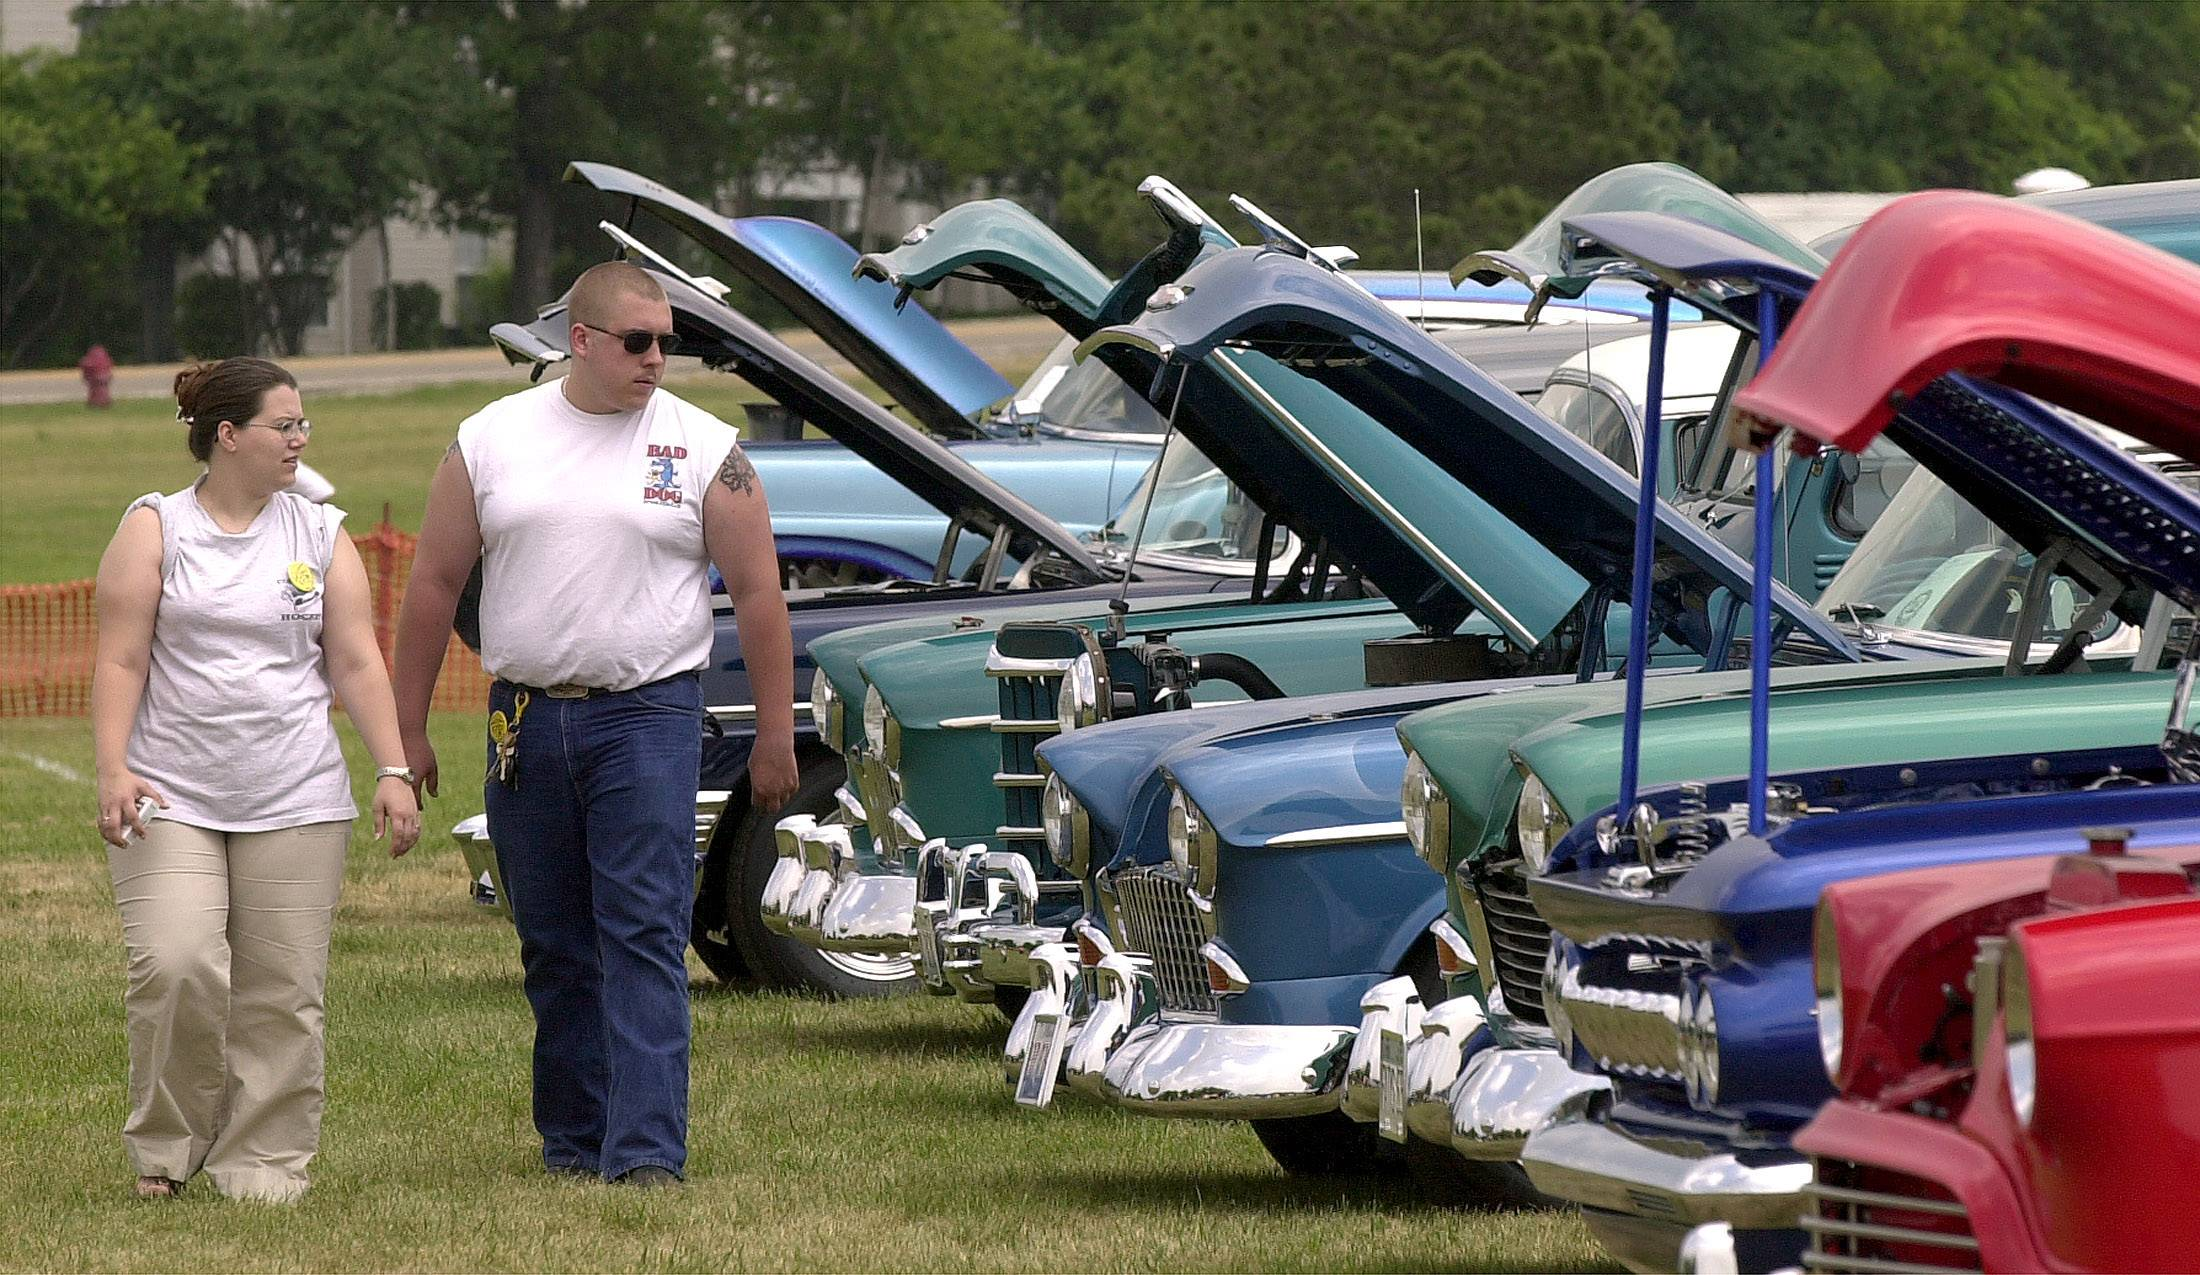 A car show will again be part of the annual Wauconda Fest event.